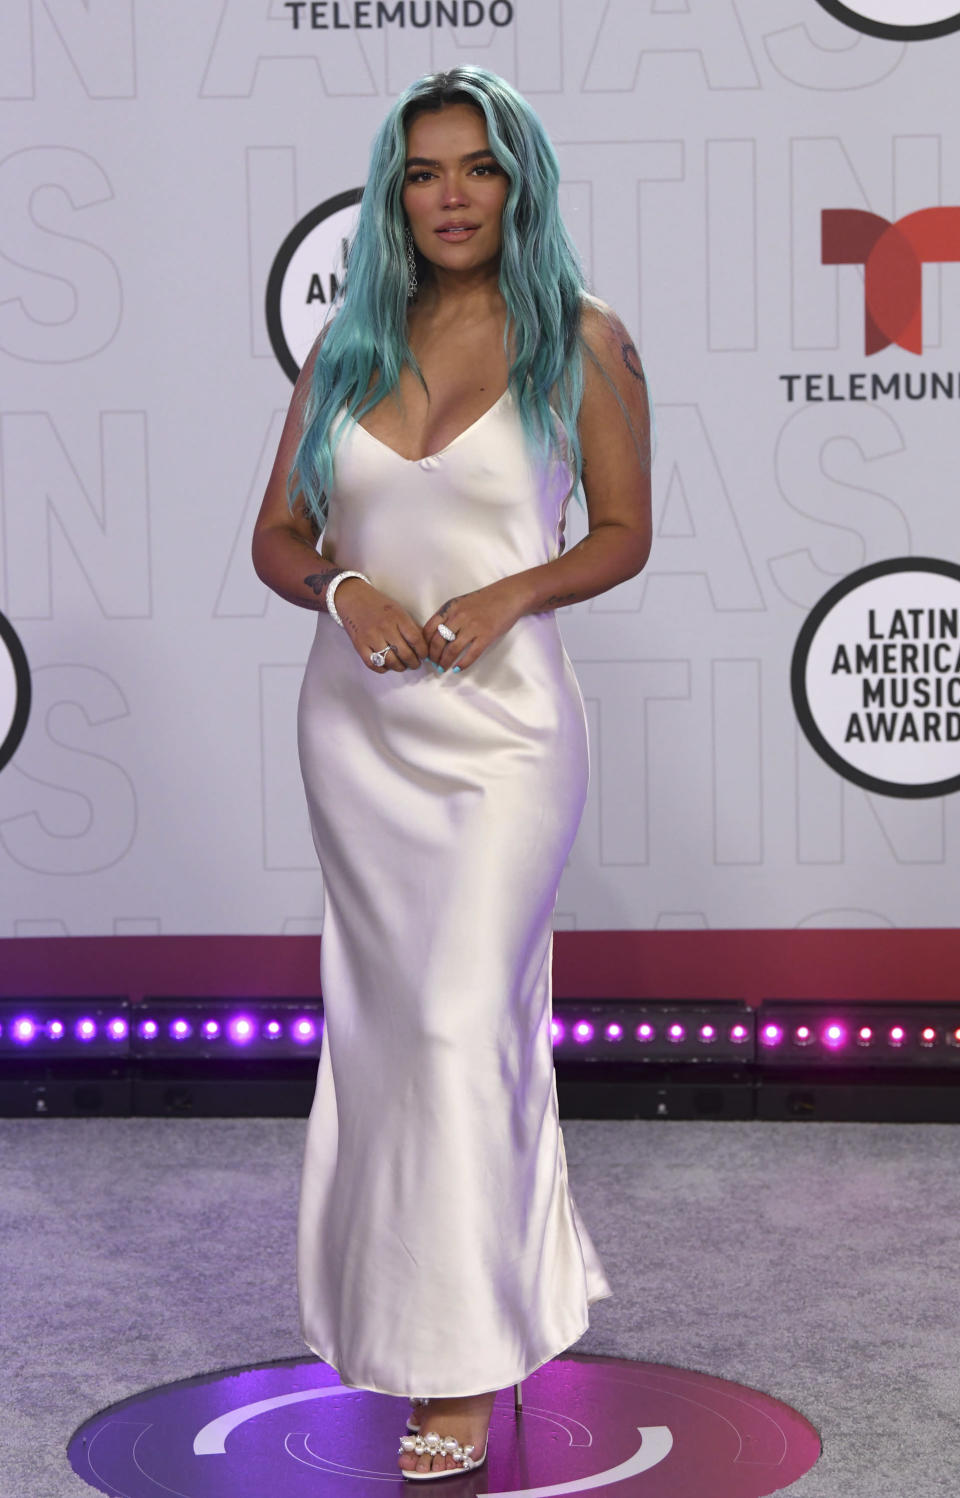 Karol G arrives at the Latin American Music Awards at the BB&T Center on Thursday, April 15, 2021, in Sunrise, Fla. (AP Photo/Taimy Alvarez)